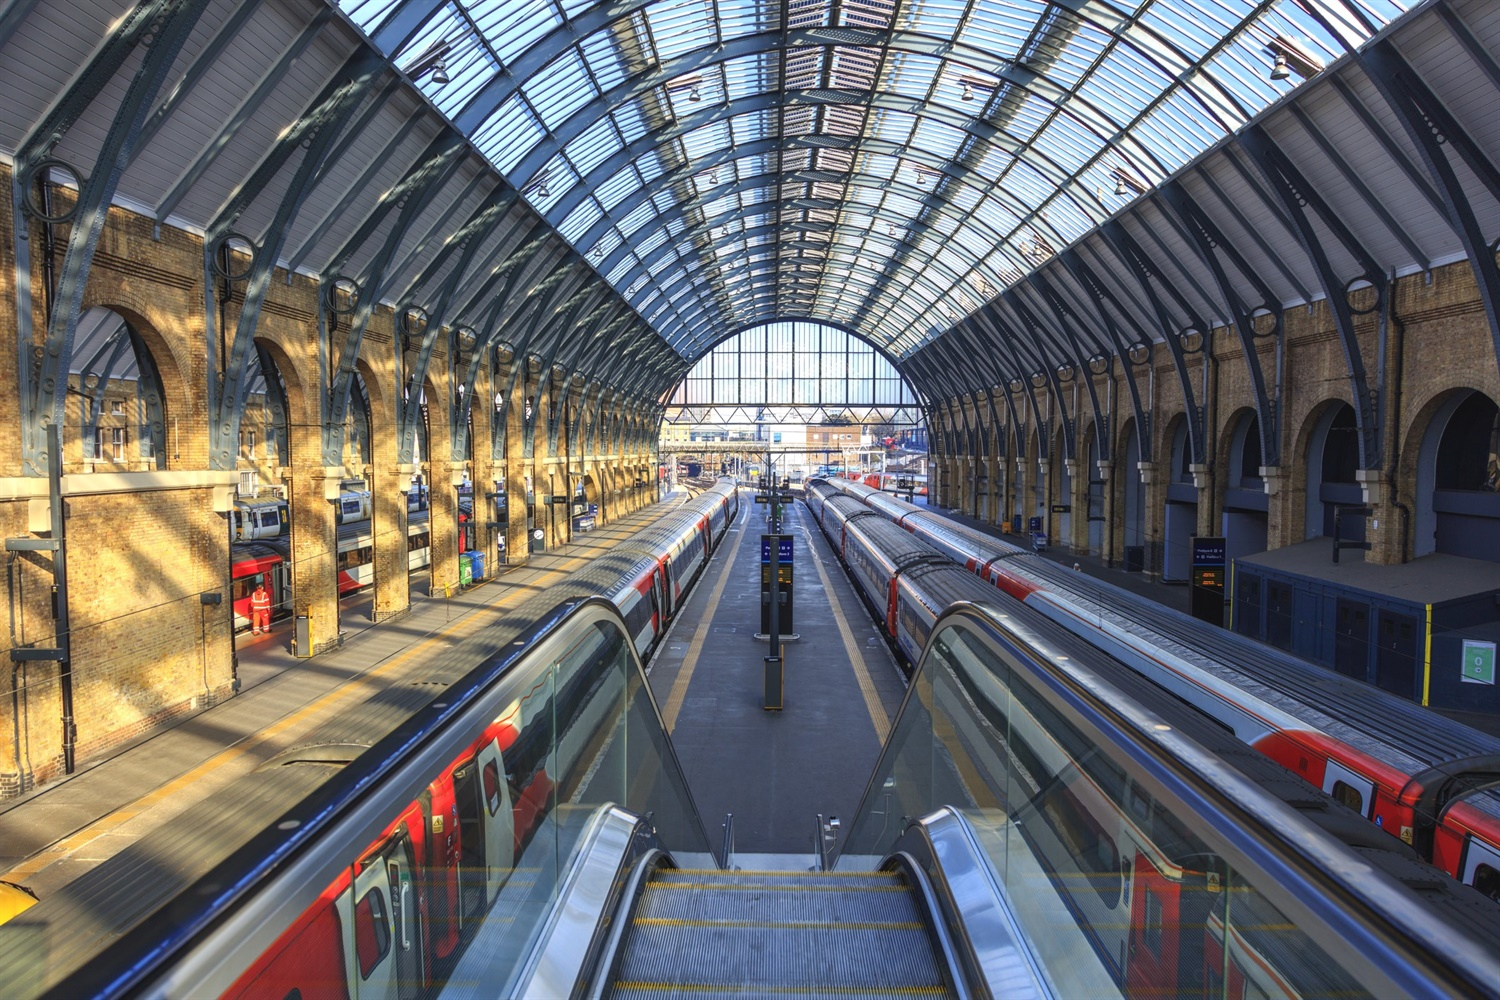 90% decrease in King's Cross station users